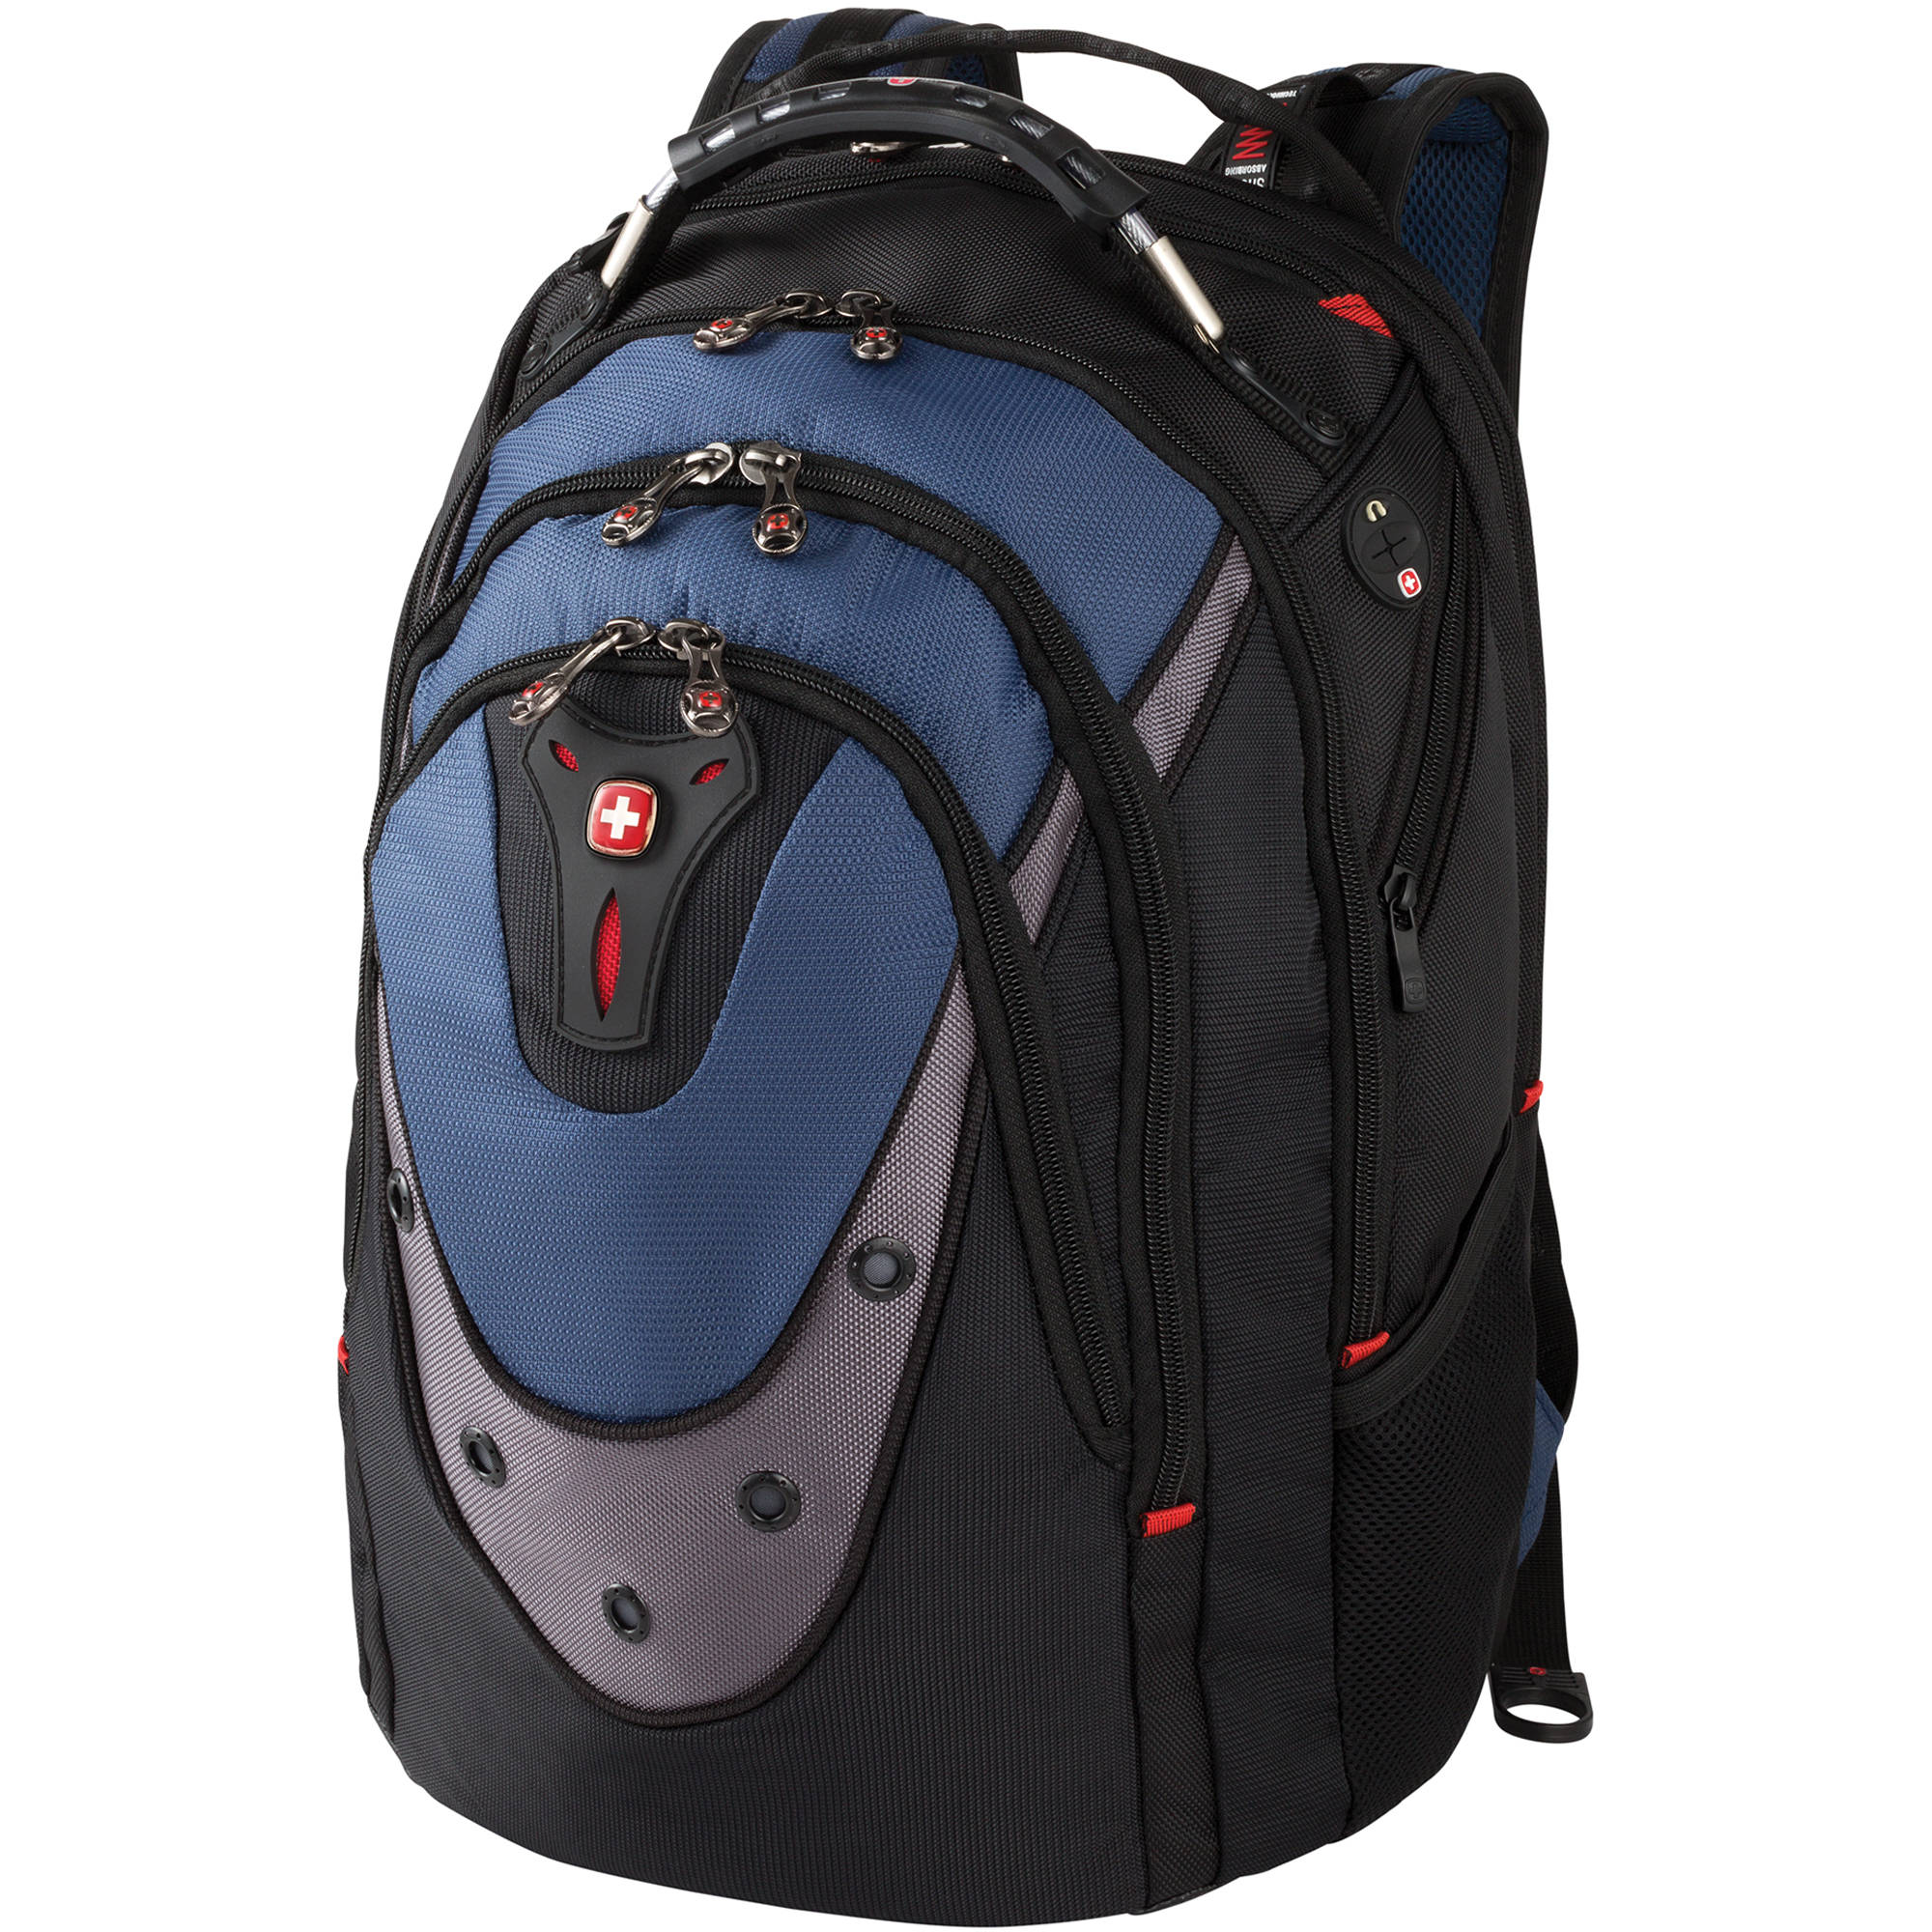 Swiss Gear Warranty Backpack - Frog Backpack